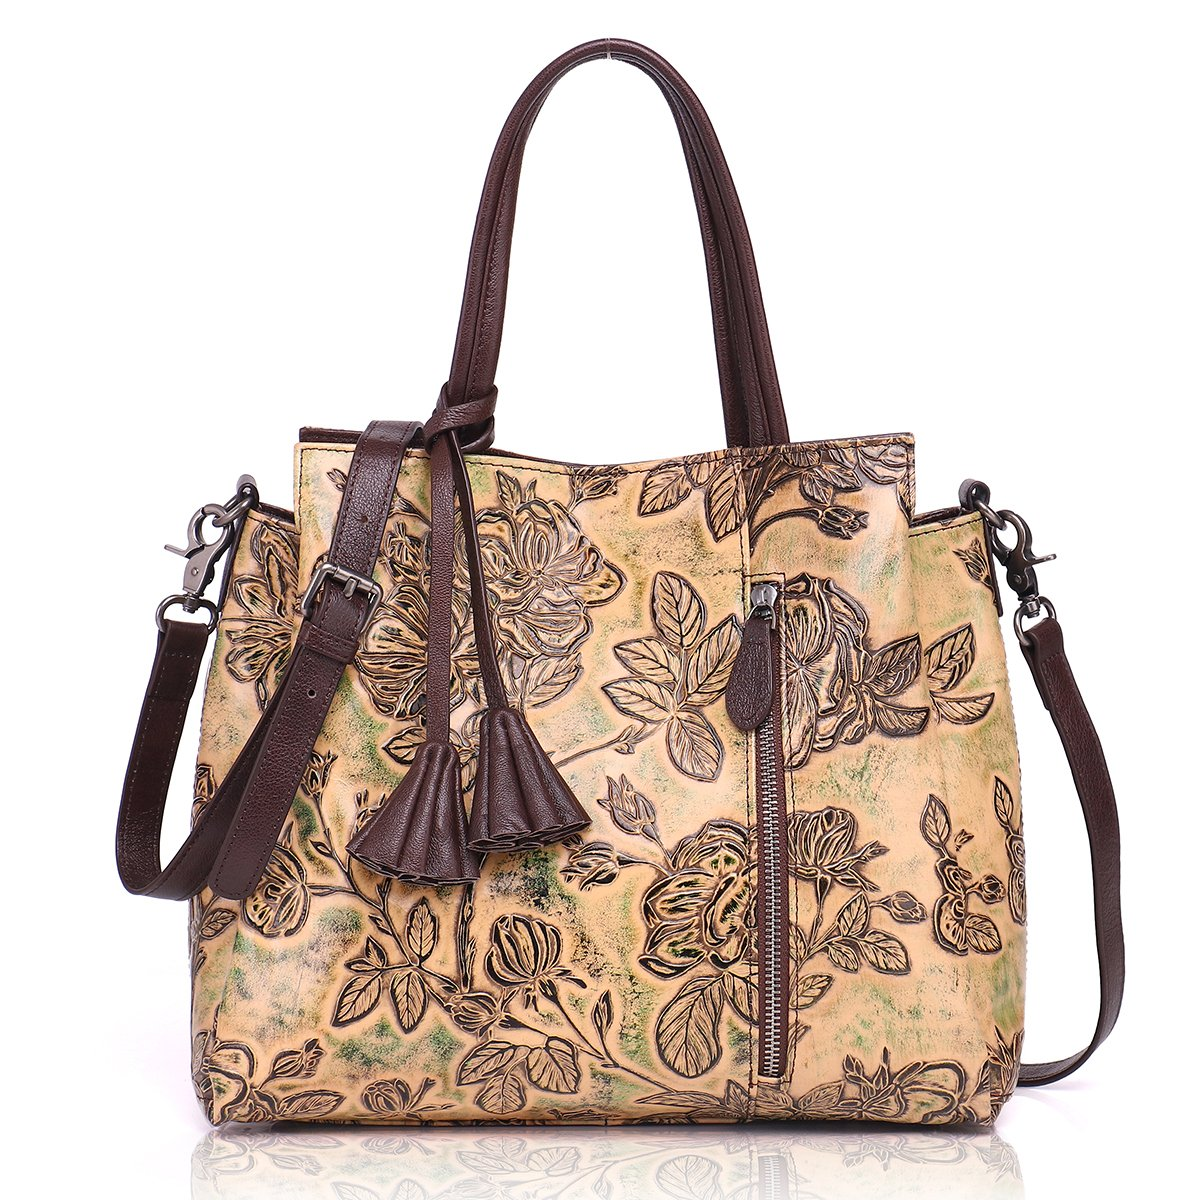 APHISON Designer Unique Embossed Floral Cowhide Leather Tote Style Ladies Top Handle Bags Handbags (BROWN) by APHISON